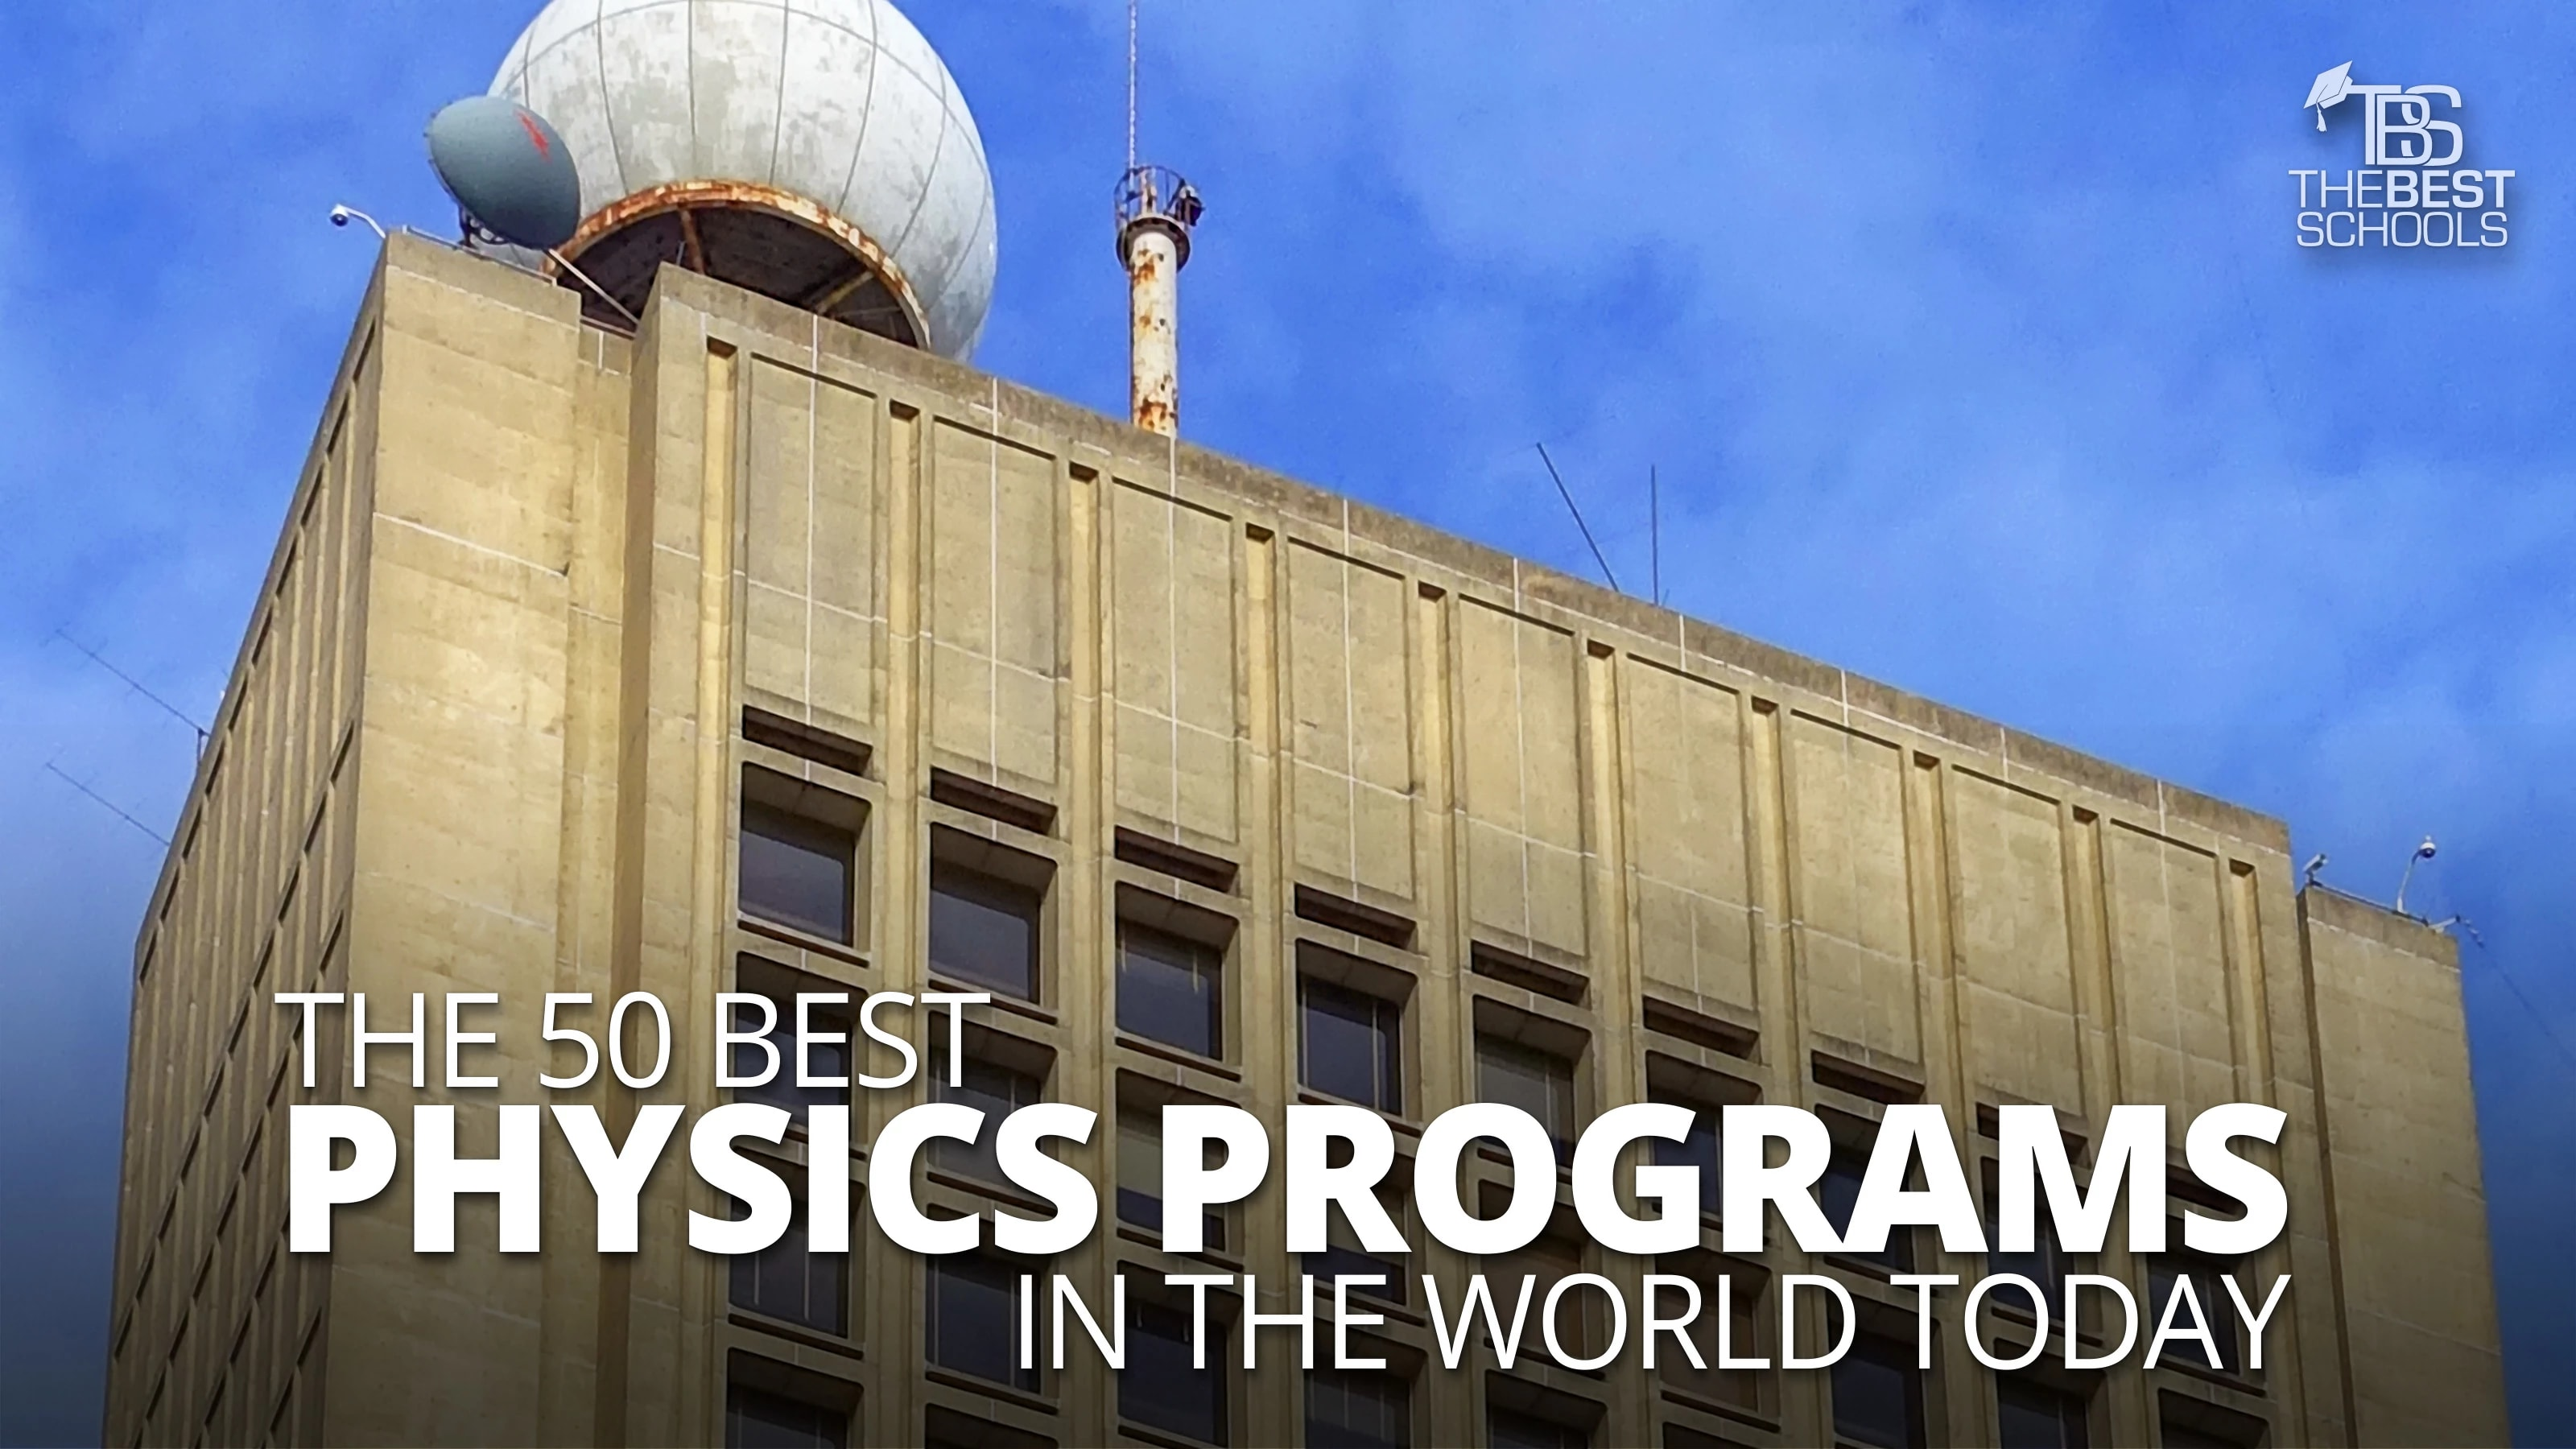 The 50 Best Physics Programs in the World Today